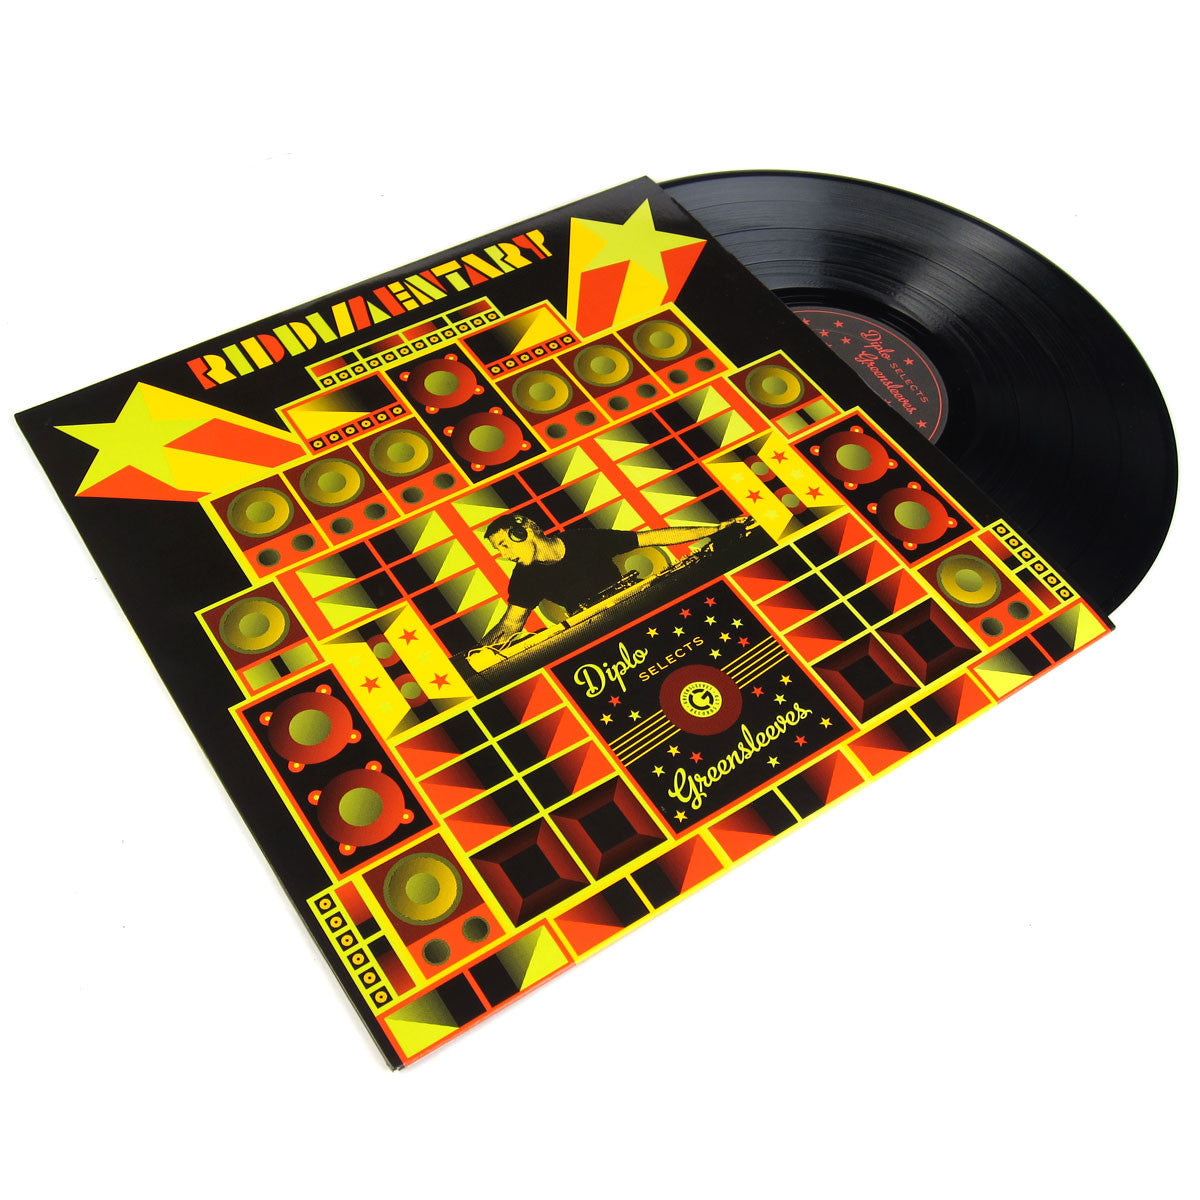 Diplo: Riddimentary - Diplo Selects Greensleeves Vinyl LP